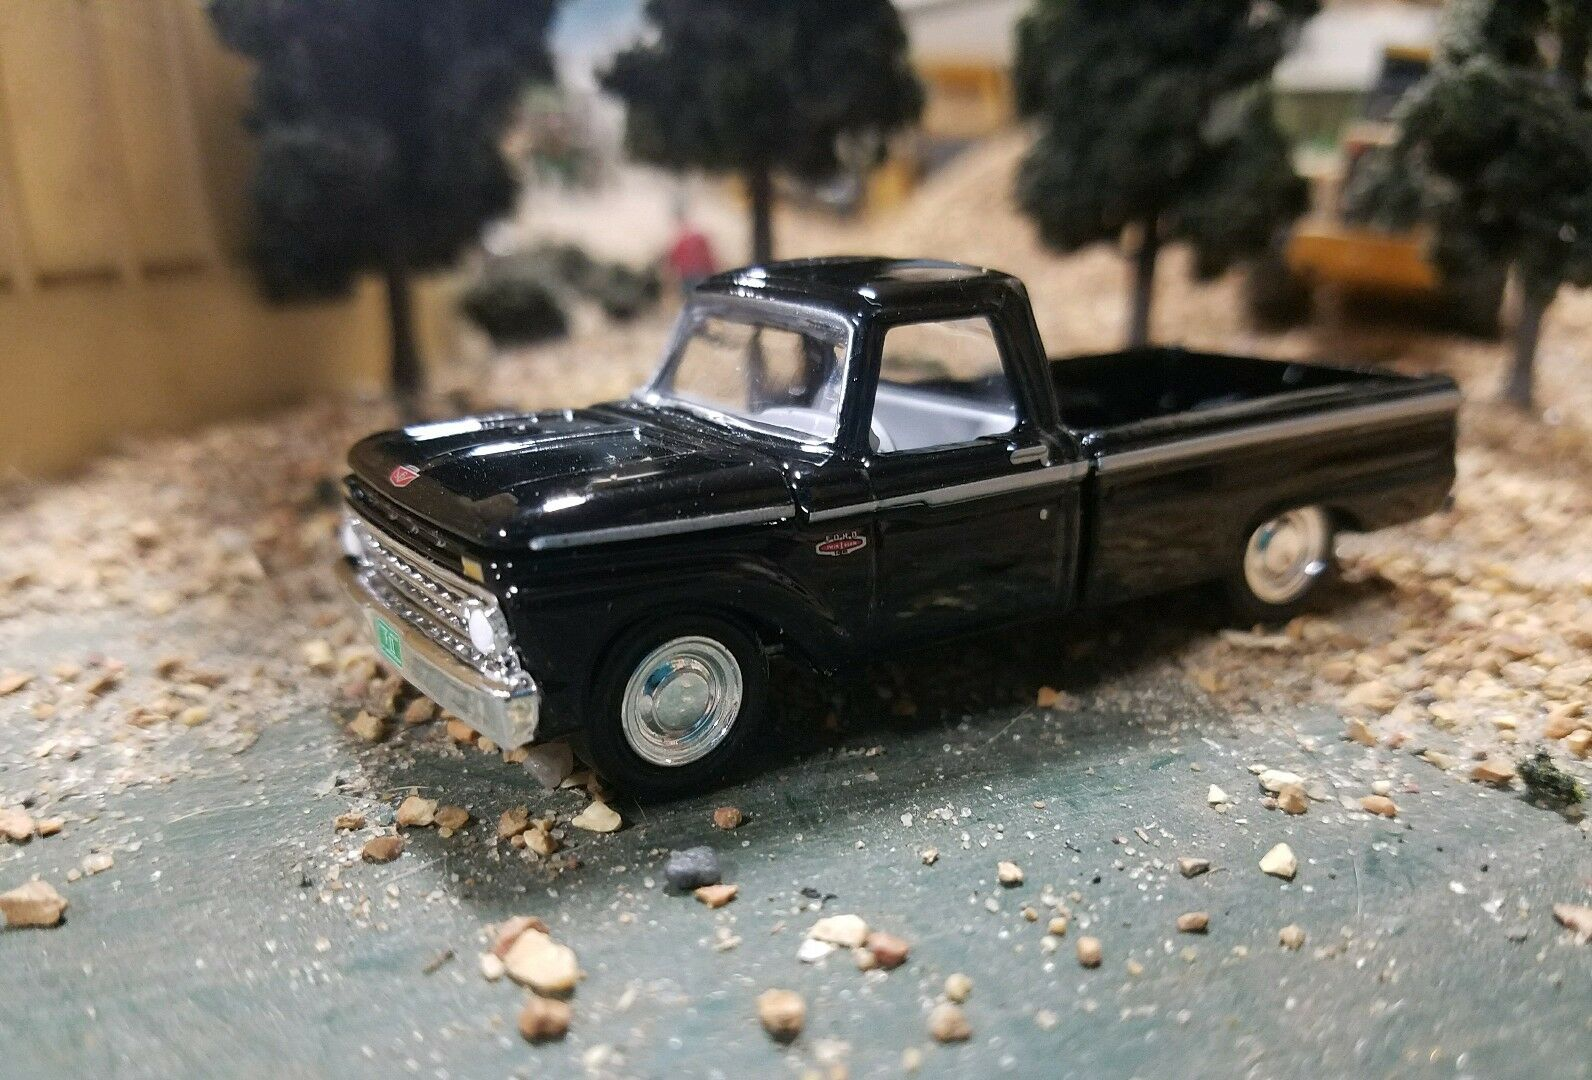 Custom Black 1964 66 Ford Pickup Show Farm Truck 164 Scale 4x4 4wd 1 Of 8 See More